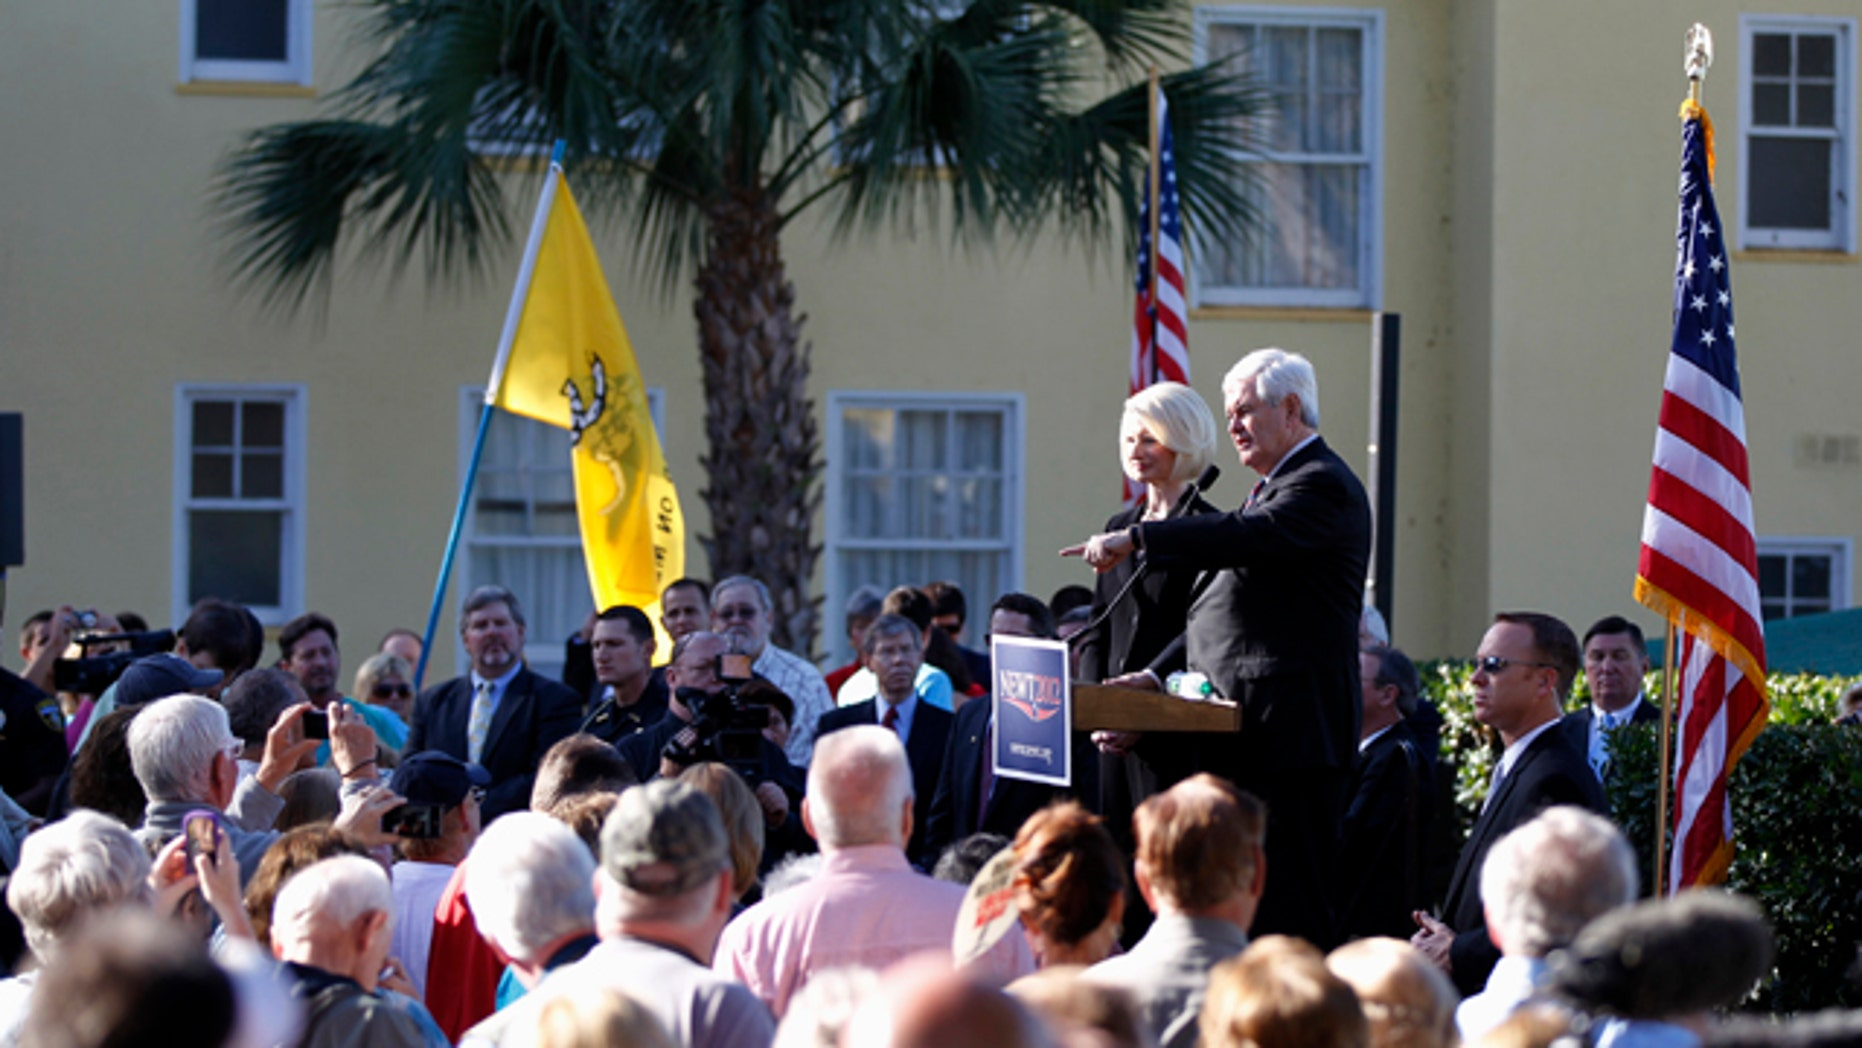 Jan. 26, 2012: Republican presidential candidate, former House Speaker Newt Gingrich, accompanied by his wife Callista, speaks at a Tea Party Rally in Mount Dora, Fla.